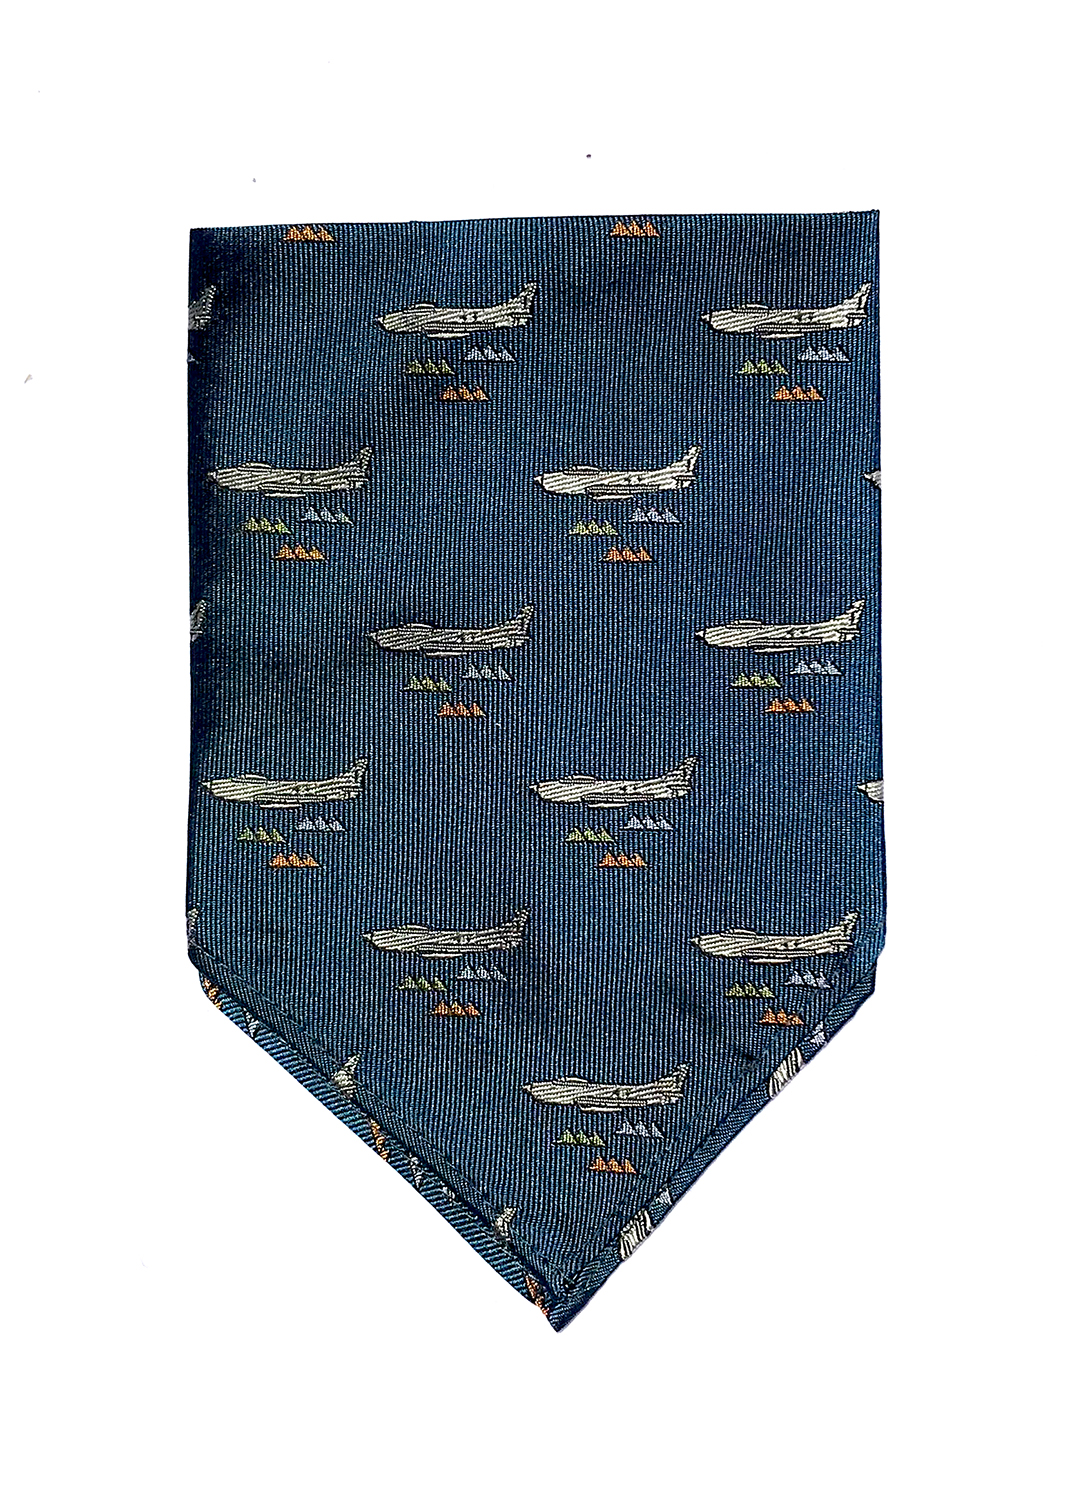 doppeldecker design aviation aircraft airplane pocket square f86